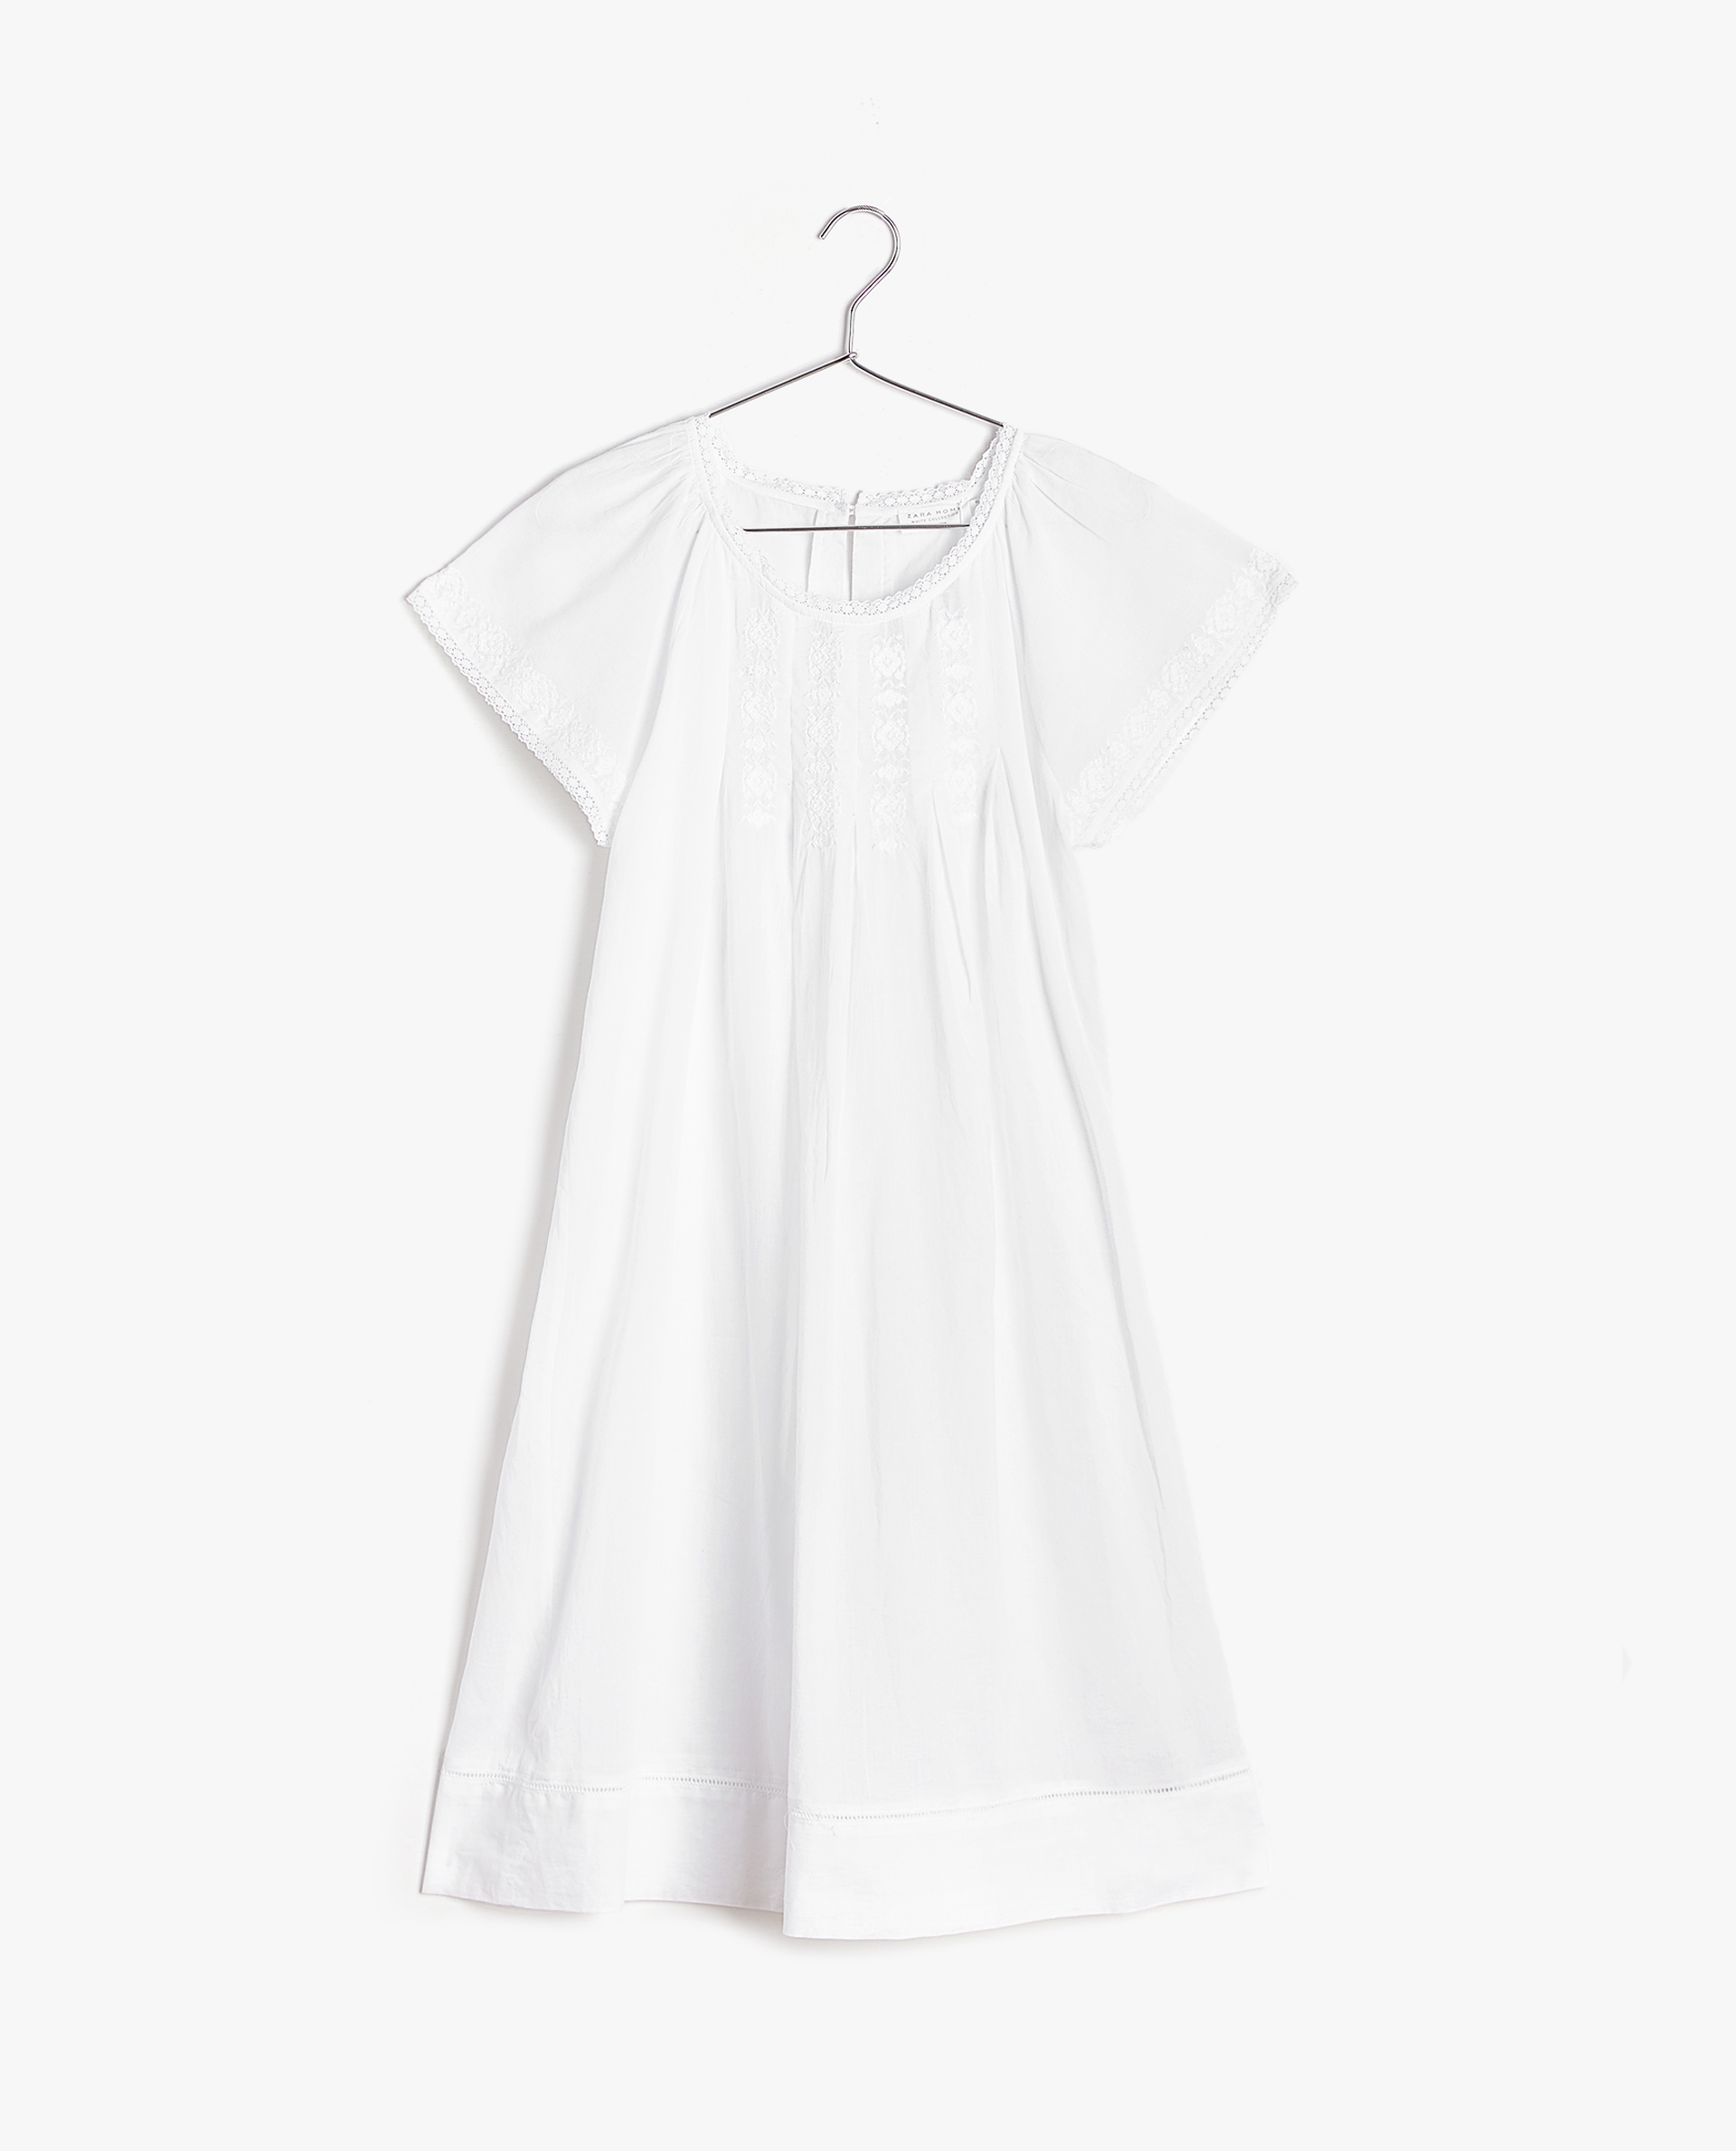 b0f5565088 EMBROIDERED COTTON NIGHTDRESS - WOMEN - CLOTHING - CLOTHING ...